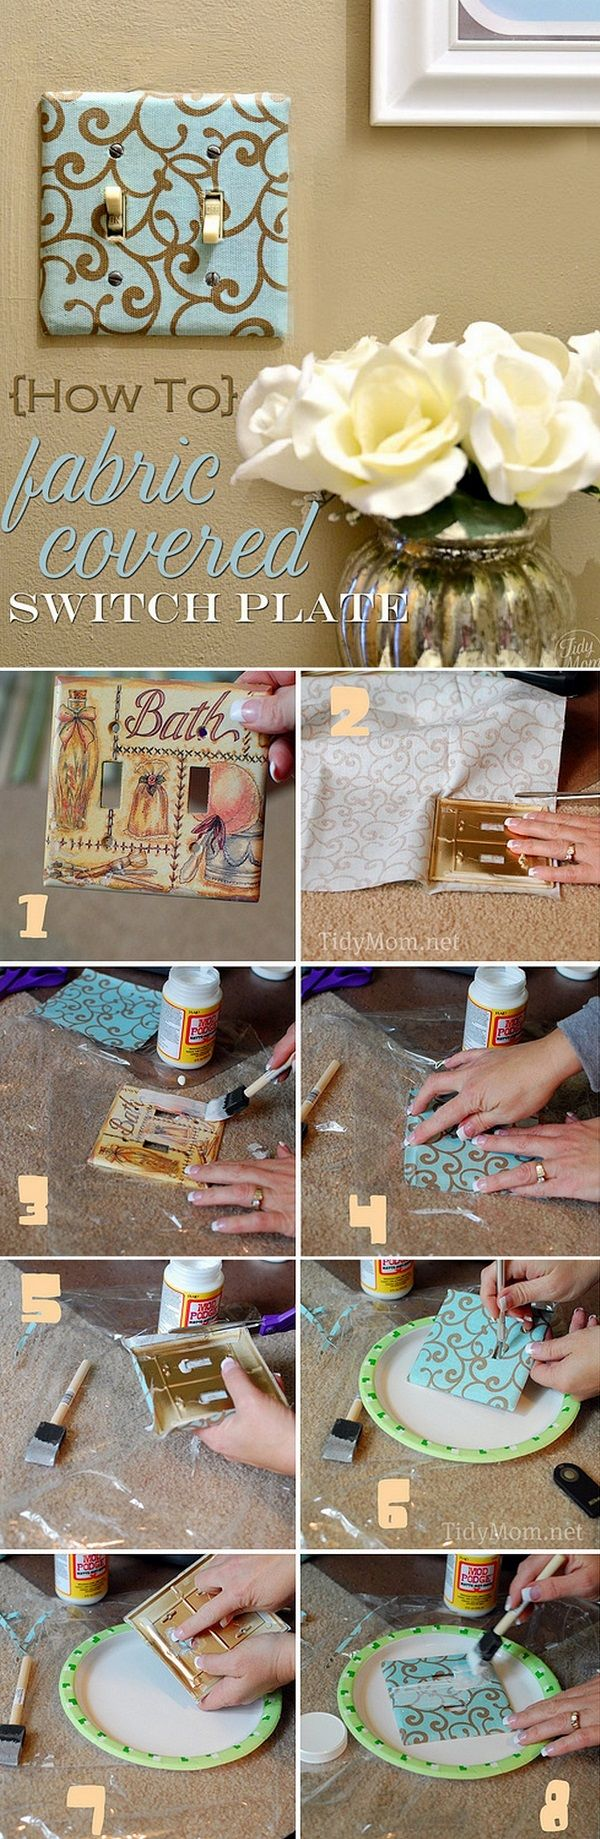 Check out this easy idea on how to make a #DIY fabric covered light switch plate for #homedecor on a #budget #crafts #project @istandarddesign